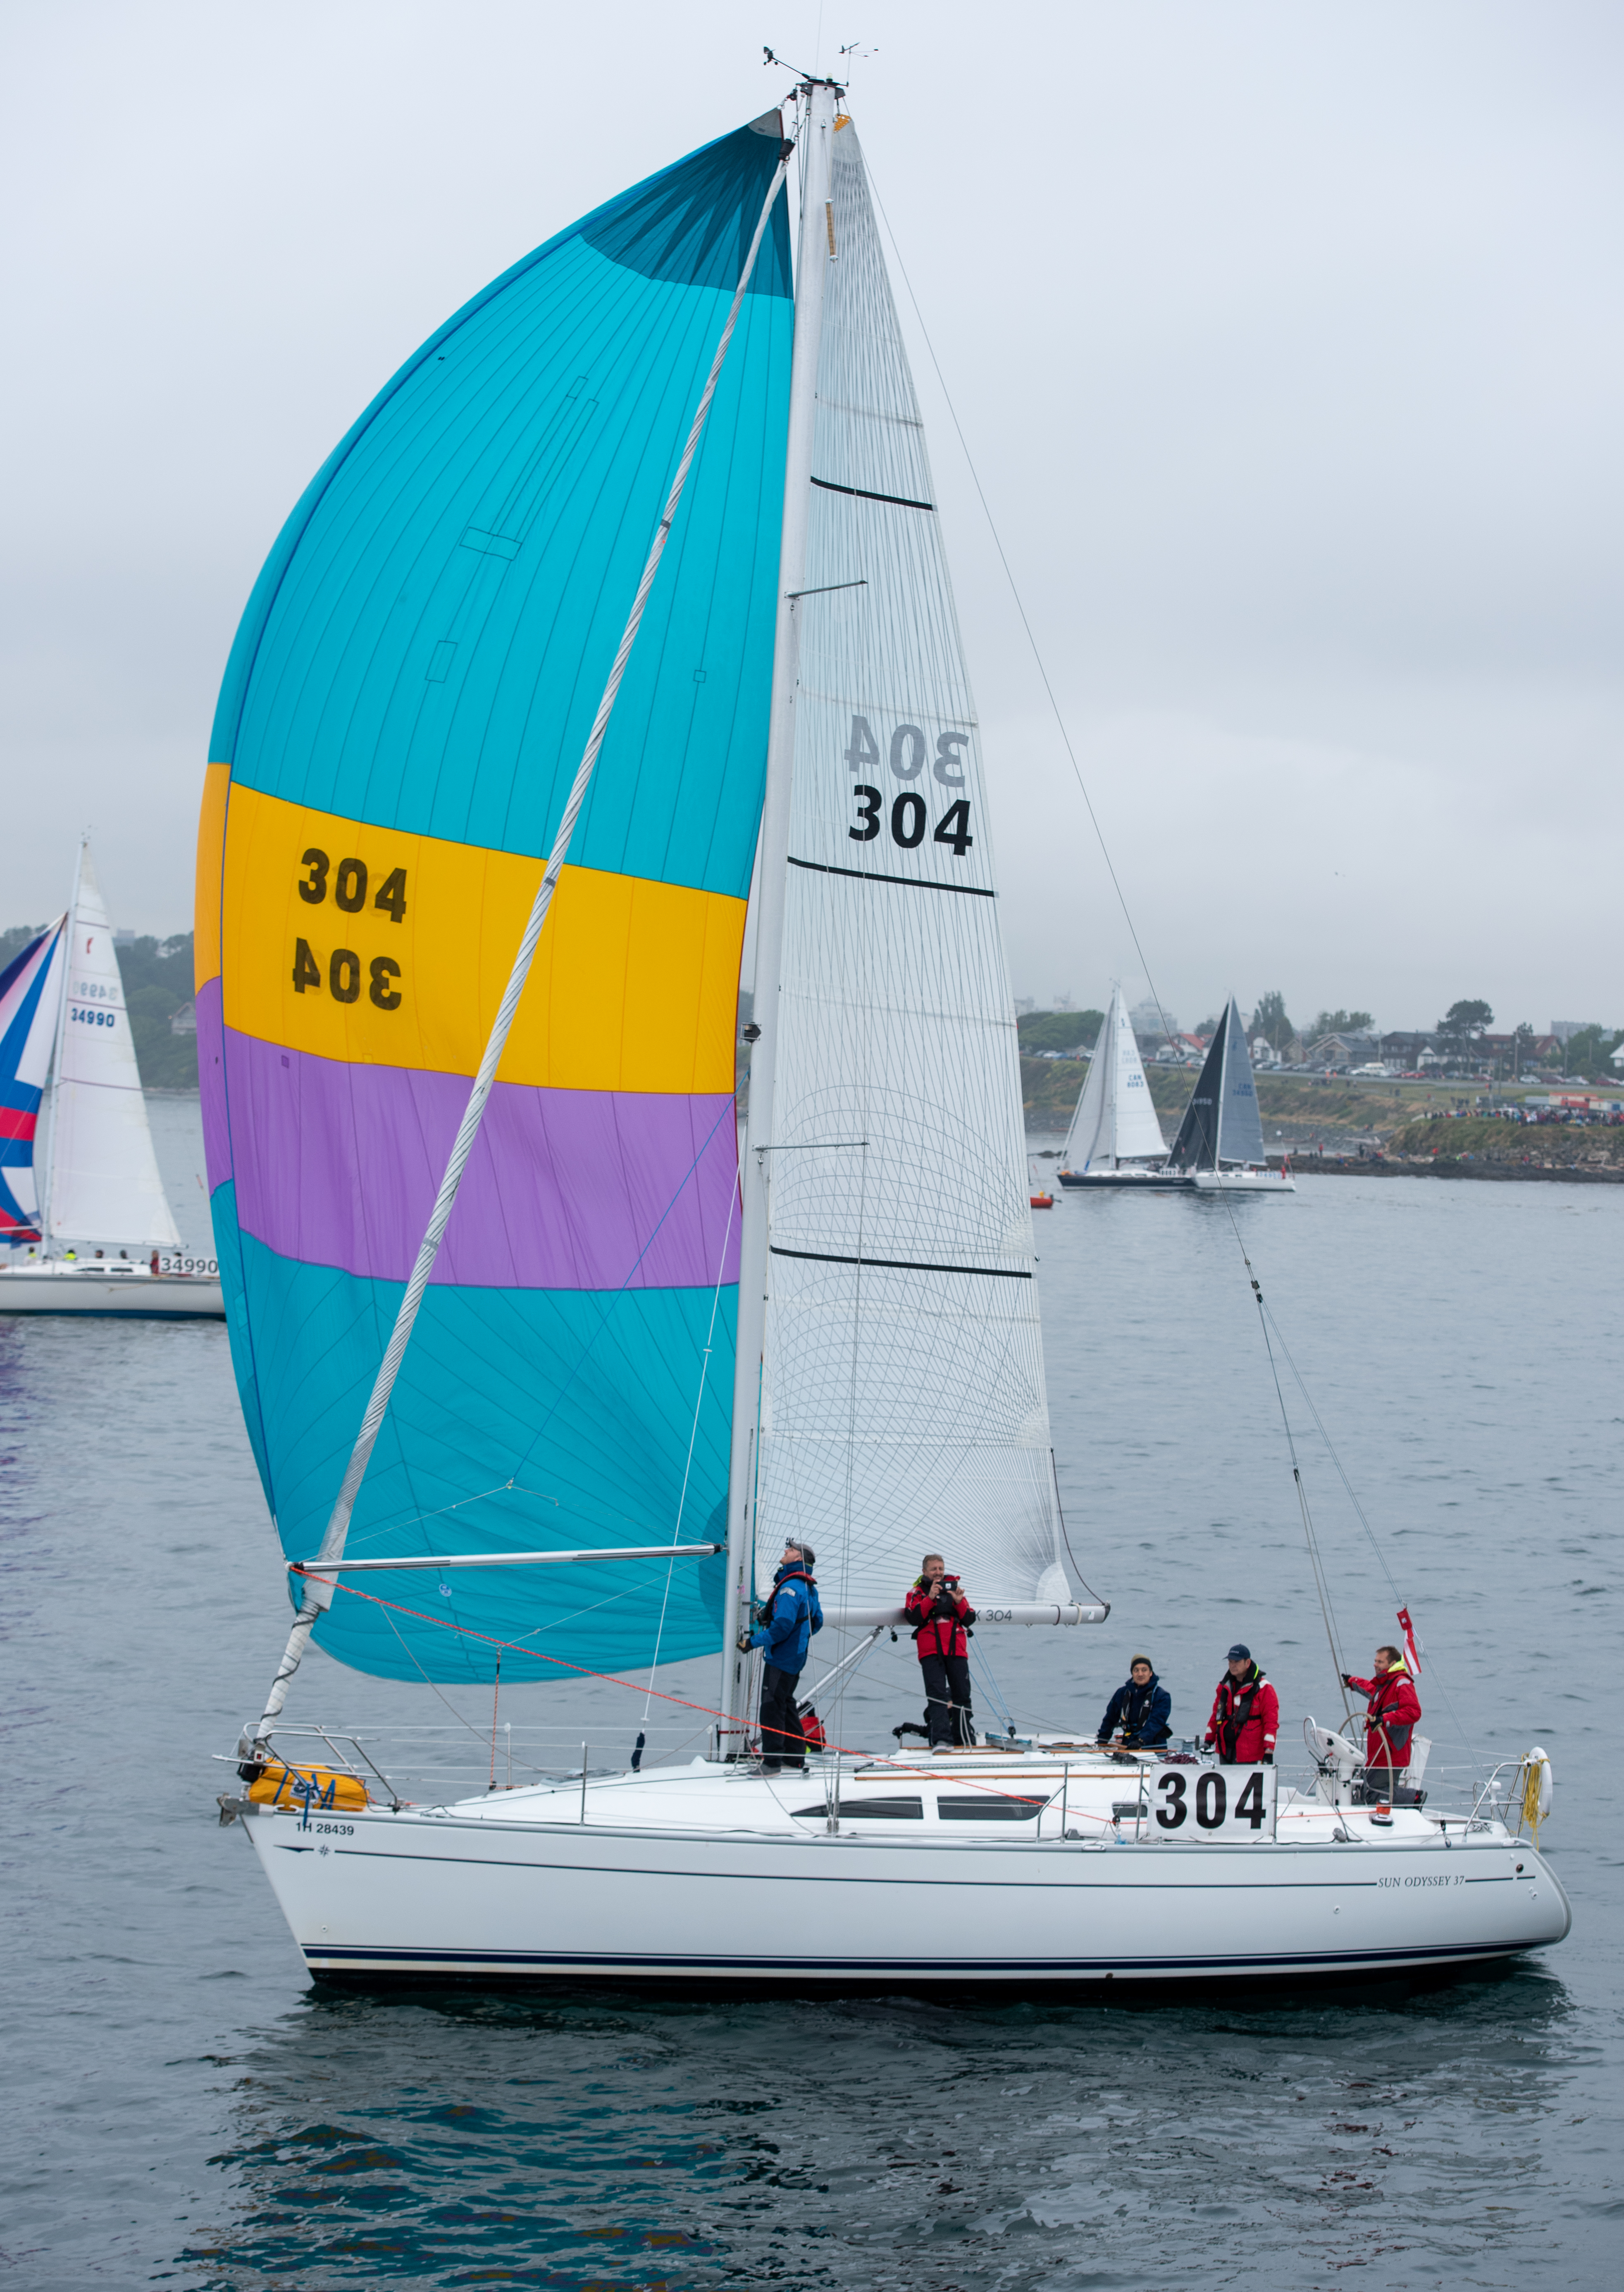 Swiftsure-25-May-2019-RMS-Media-by-Rob-Porter-52